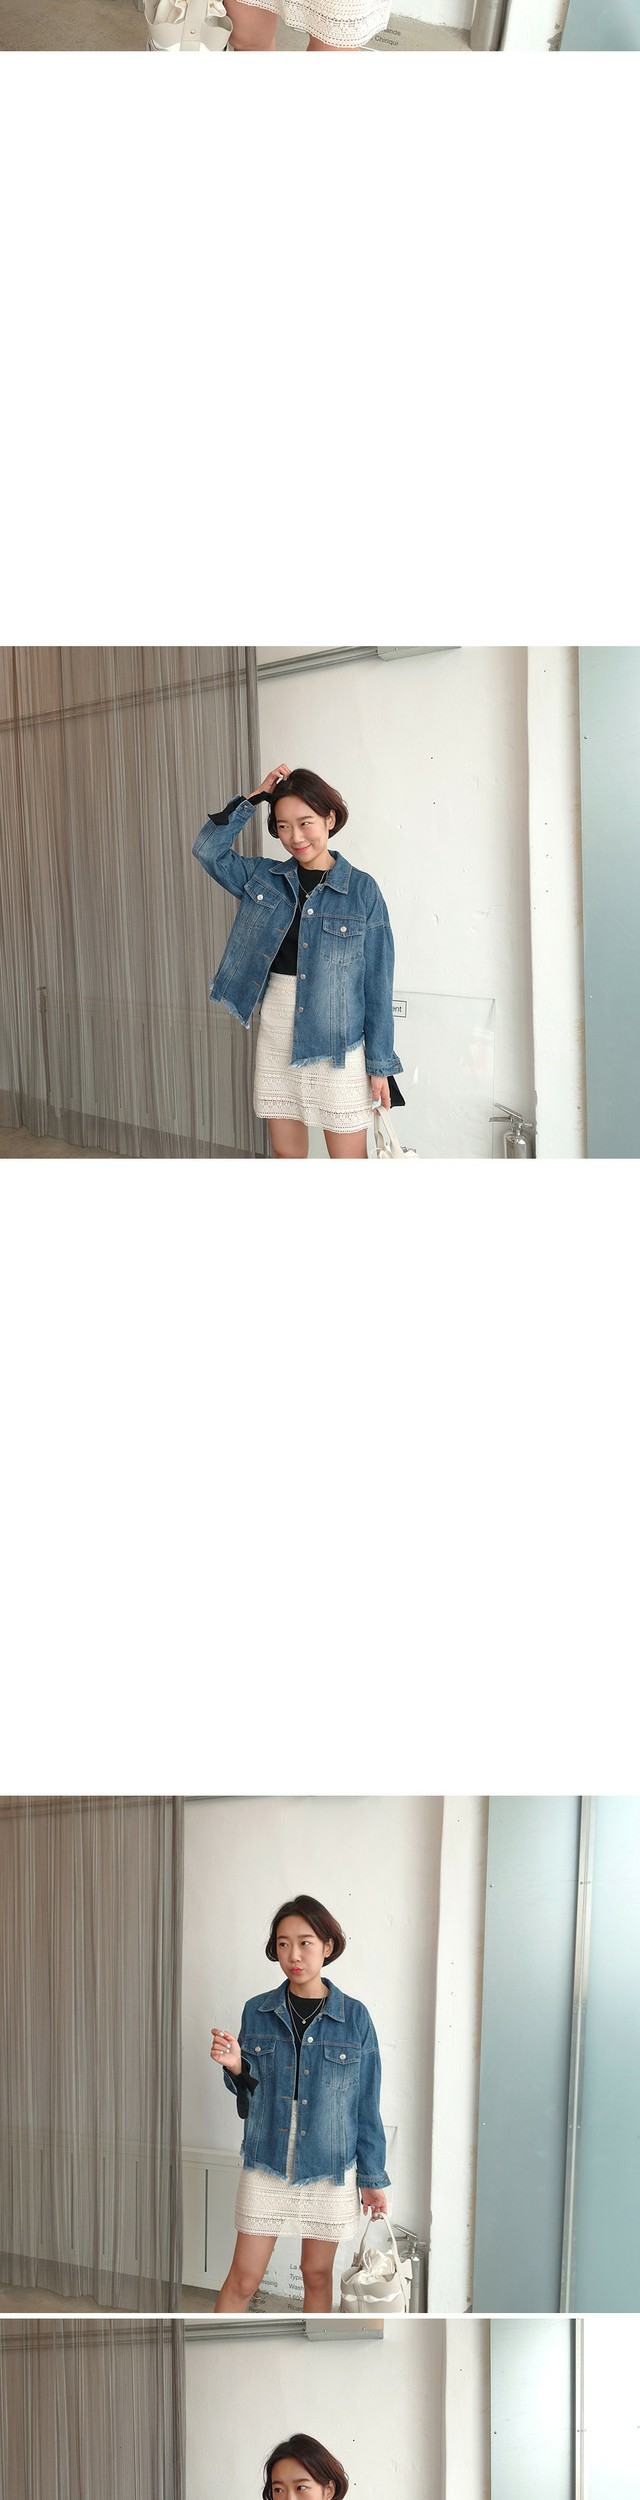 Irene-lace skirt [size: S, M / 2color]